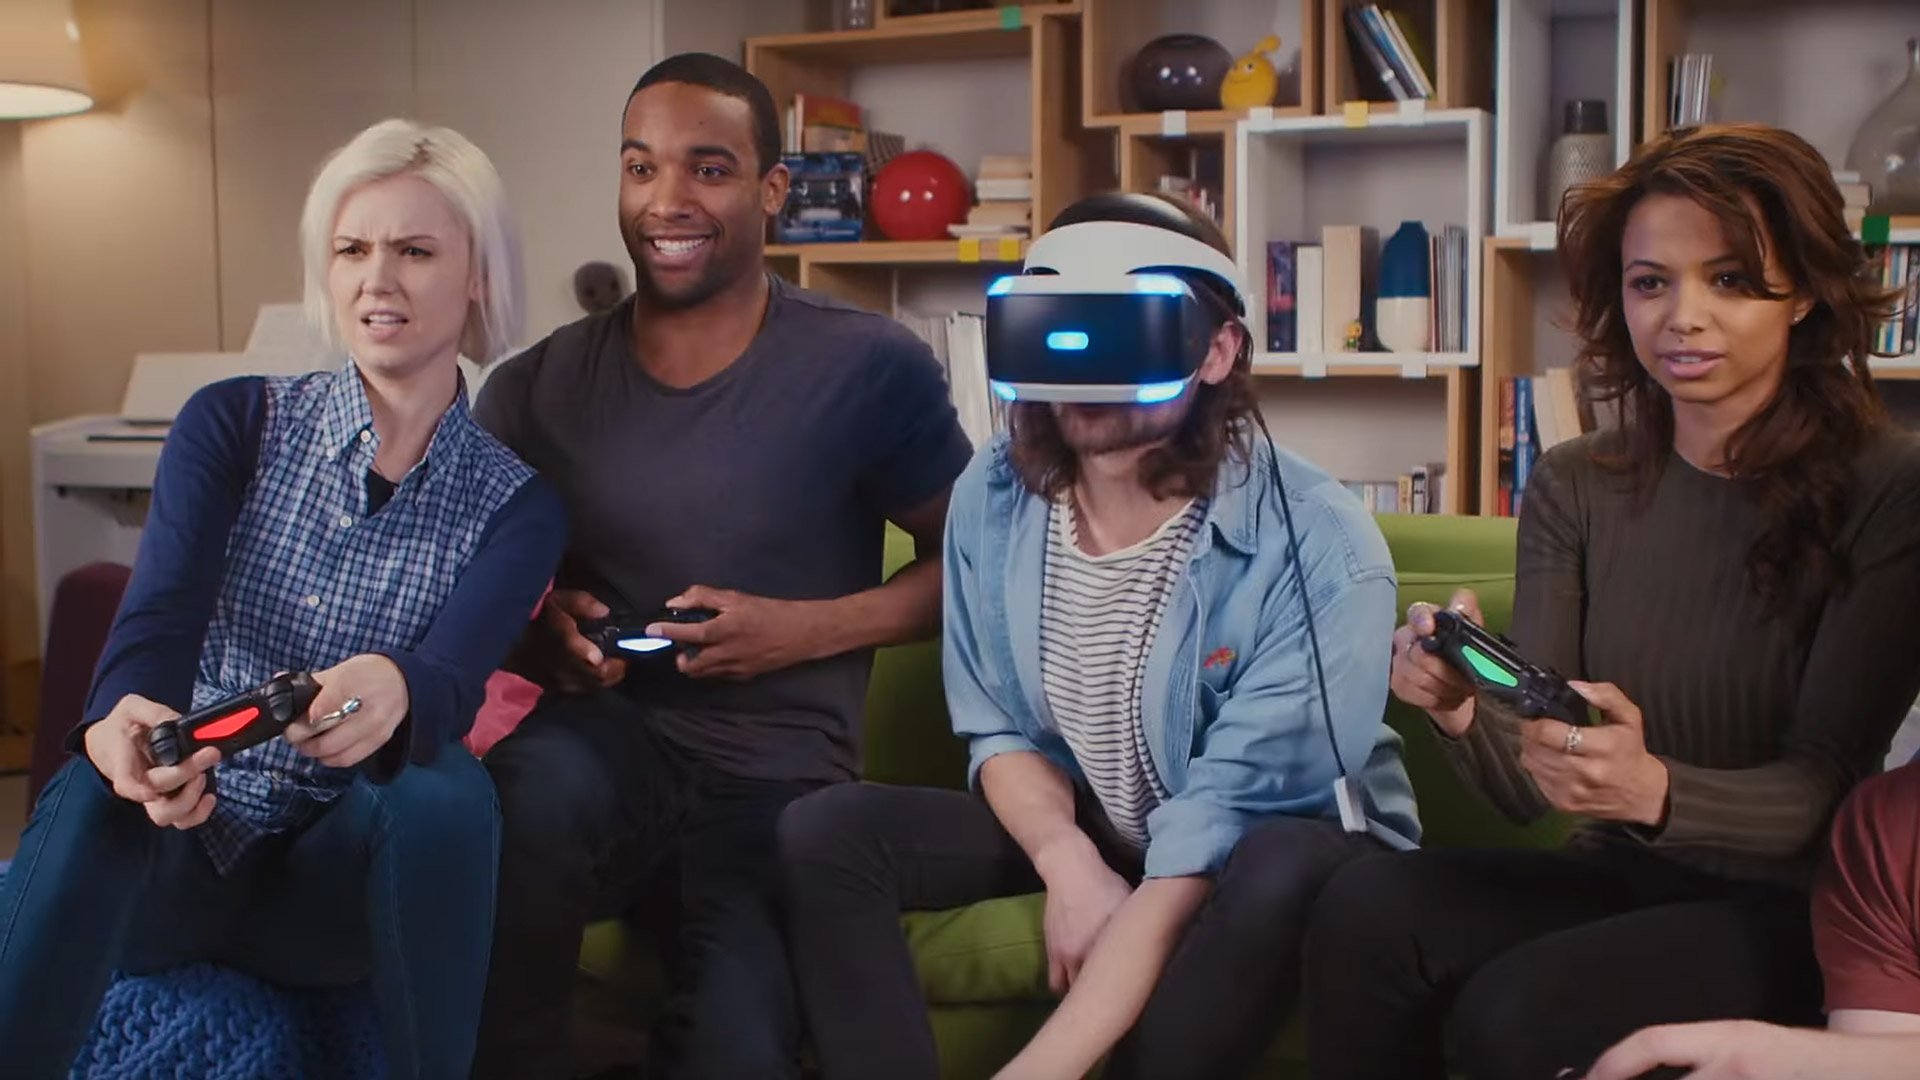 3 great vr party games to play with friends and family this holiday